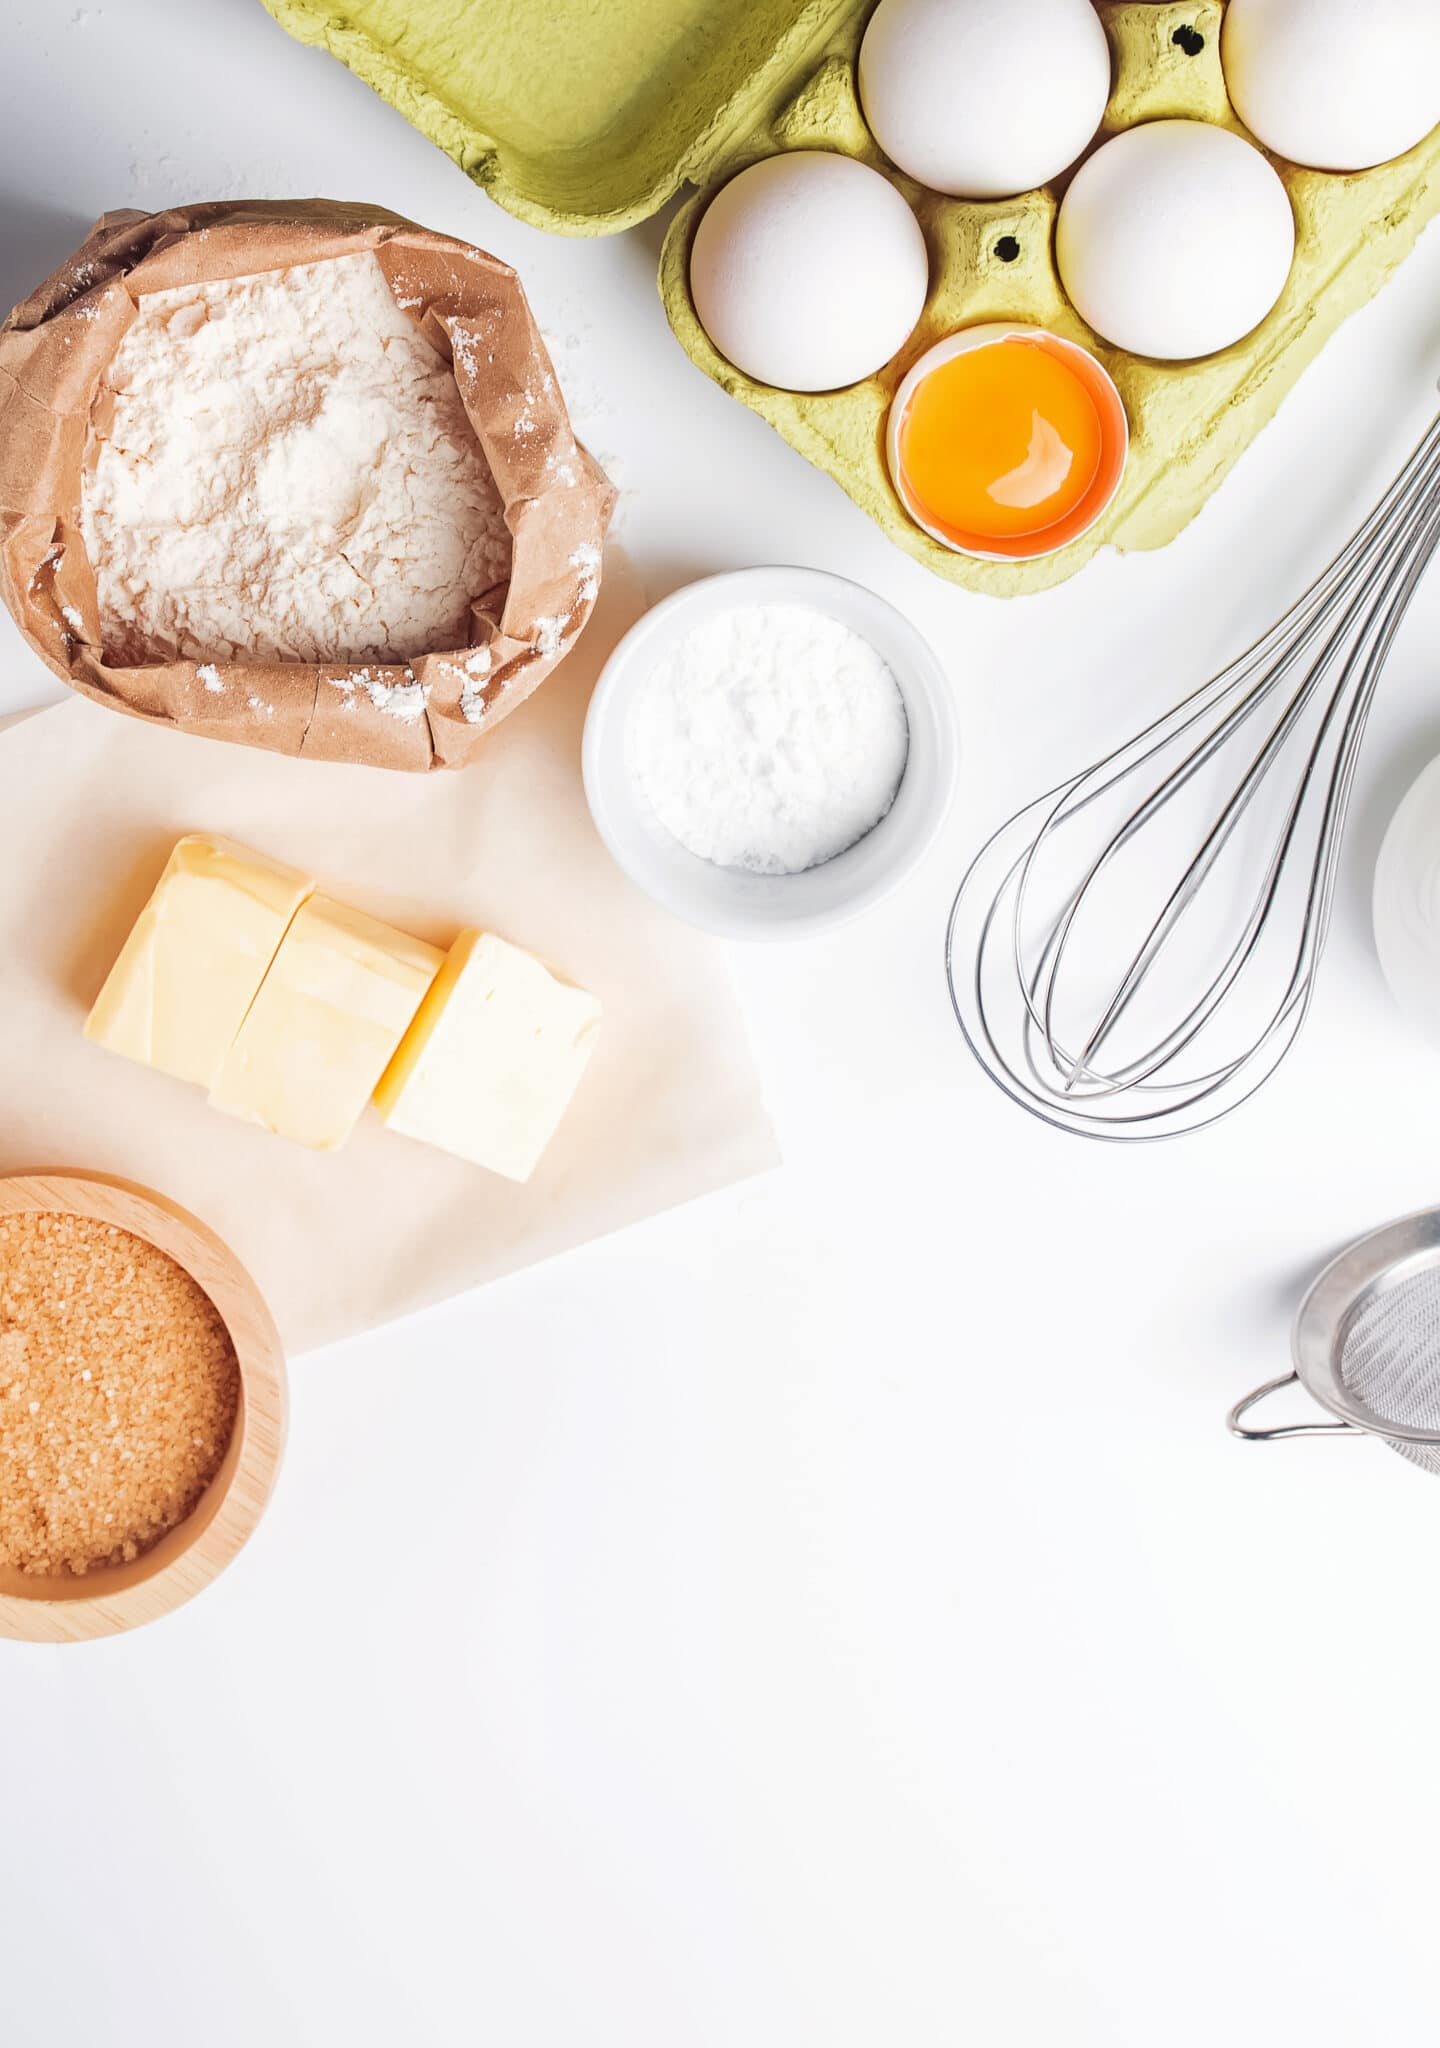 Baking ingredients on a bright white background.